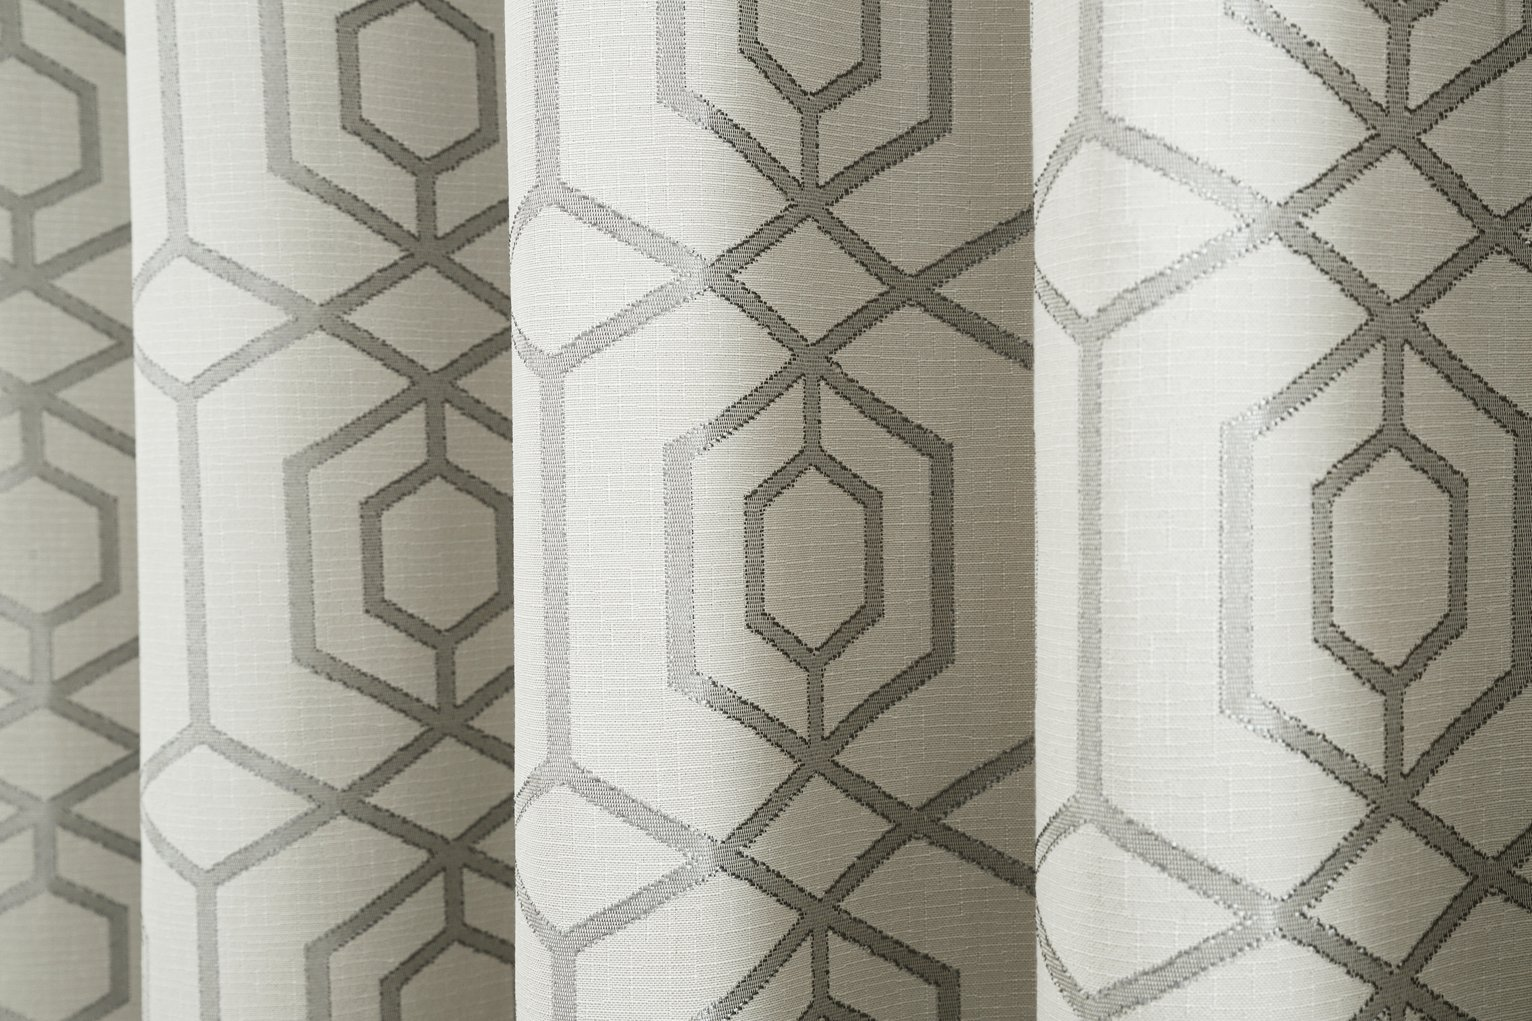 Curtina Camberwell Eyelet Curtains - 229x229cm - Silver